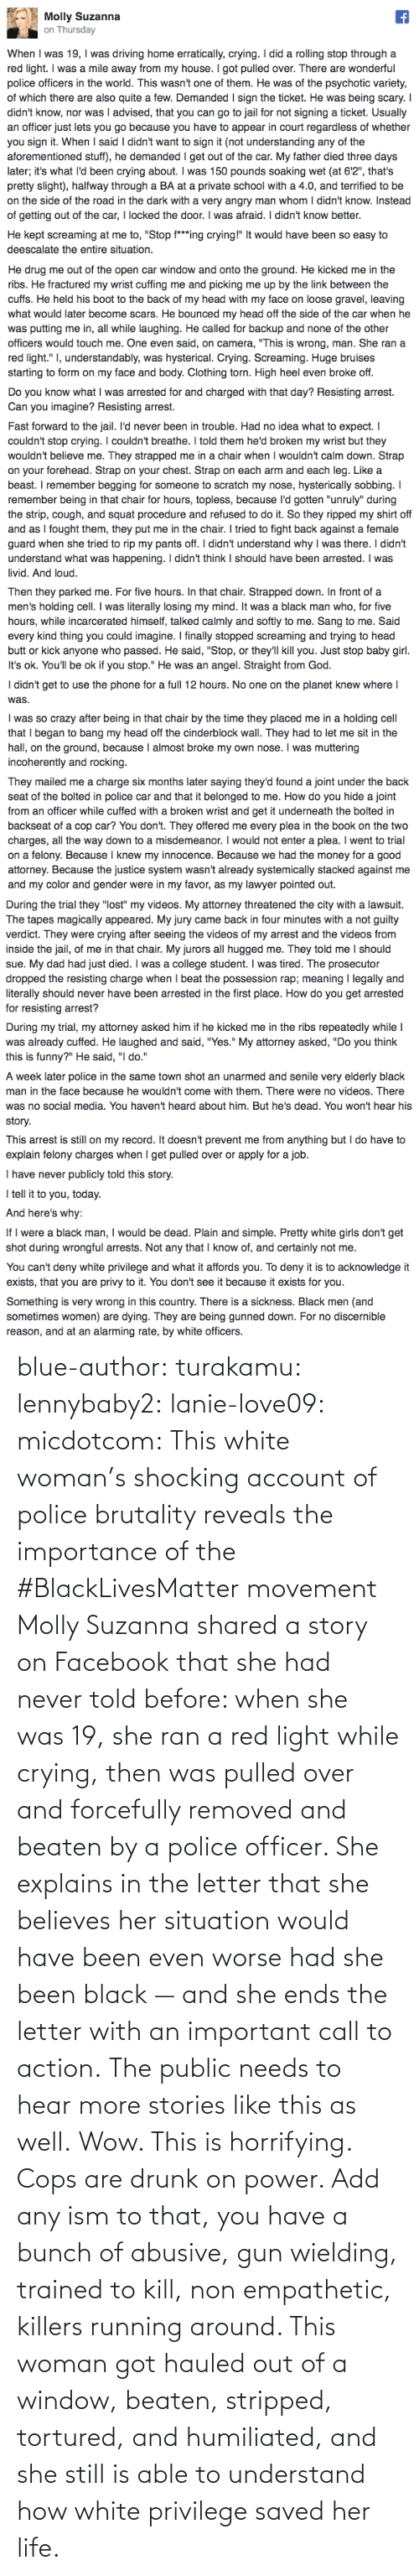 White Privilege: blue-author: turakamu:  lennybaby2:  lanie-love09:  micdotcom:  This white woman's shocking account of police brutality reveals the importance of the #BlackLivesMatter movement Molly Suzanna shared a story on Facebook that she had never told before: when she was 19, she ran a red light while crying, then was pulled over and forcefully removed and beaten by a police officer. She explains in the letter that she believes her situation would have been even worse had she been black — and she ends the letter with an important call to action.  The public needs to hear more stories like this as well.  Wow. This is horrifying.  Cops are drunk on power. Add any ism to that, you have a bunch of abusive, gun wielding, trained to kill, non empathetic, killers running around.    This woman got hauled out of a window, beaten, stripped, tortured, and humiliated, and she still is able to understand how white privilege saved her life.